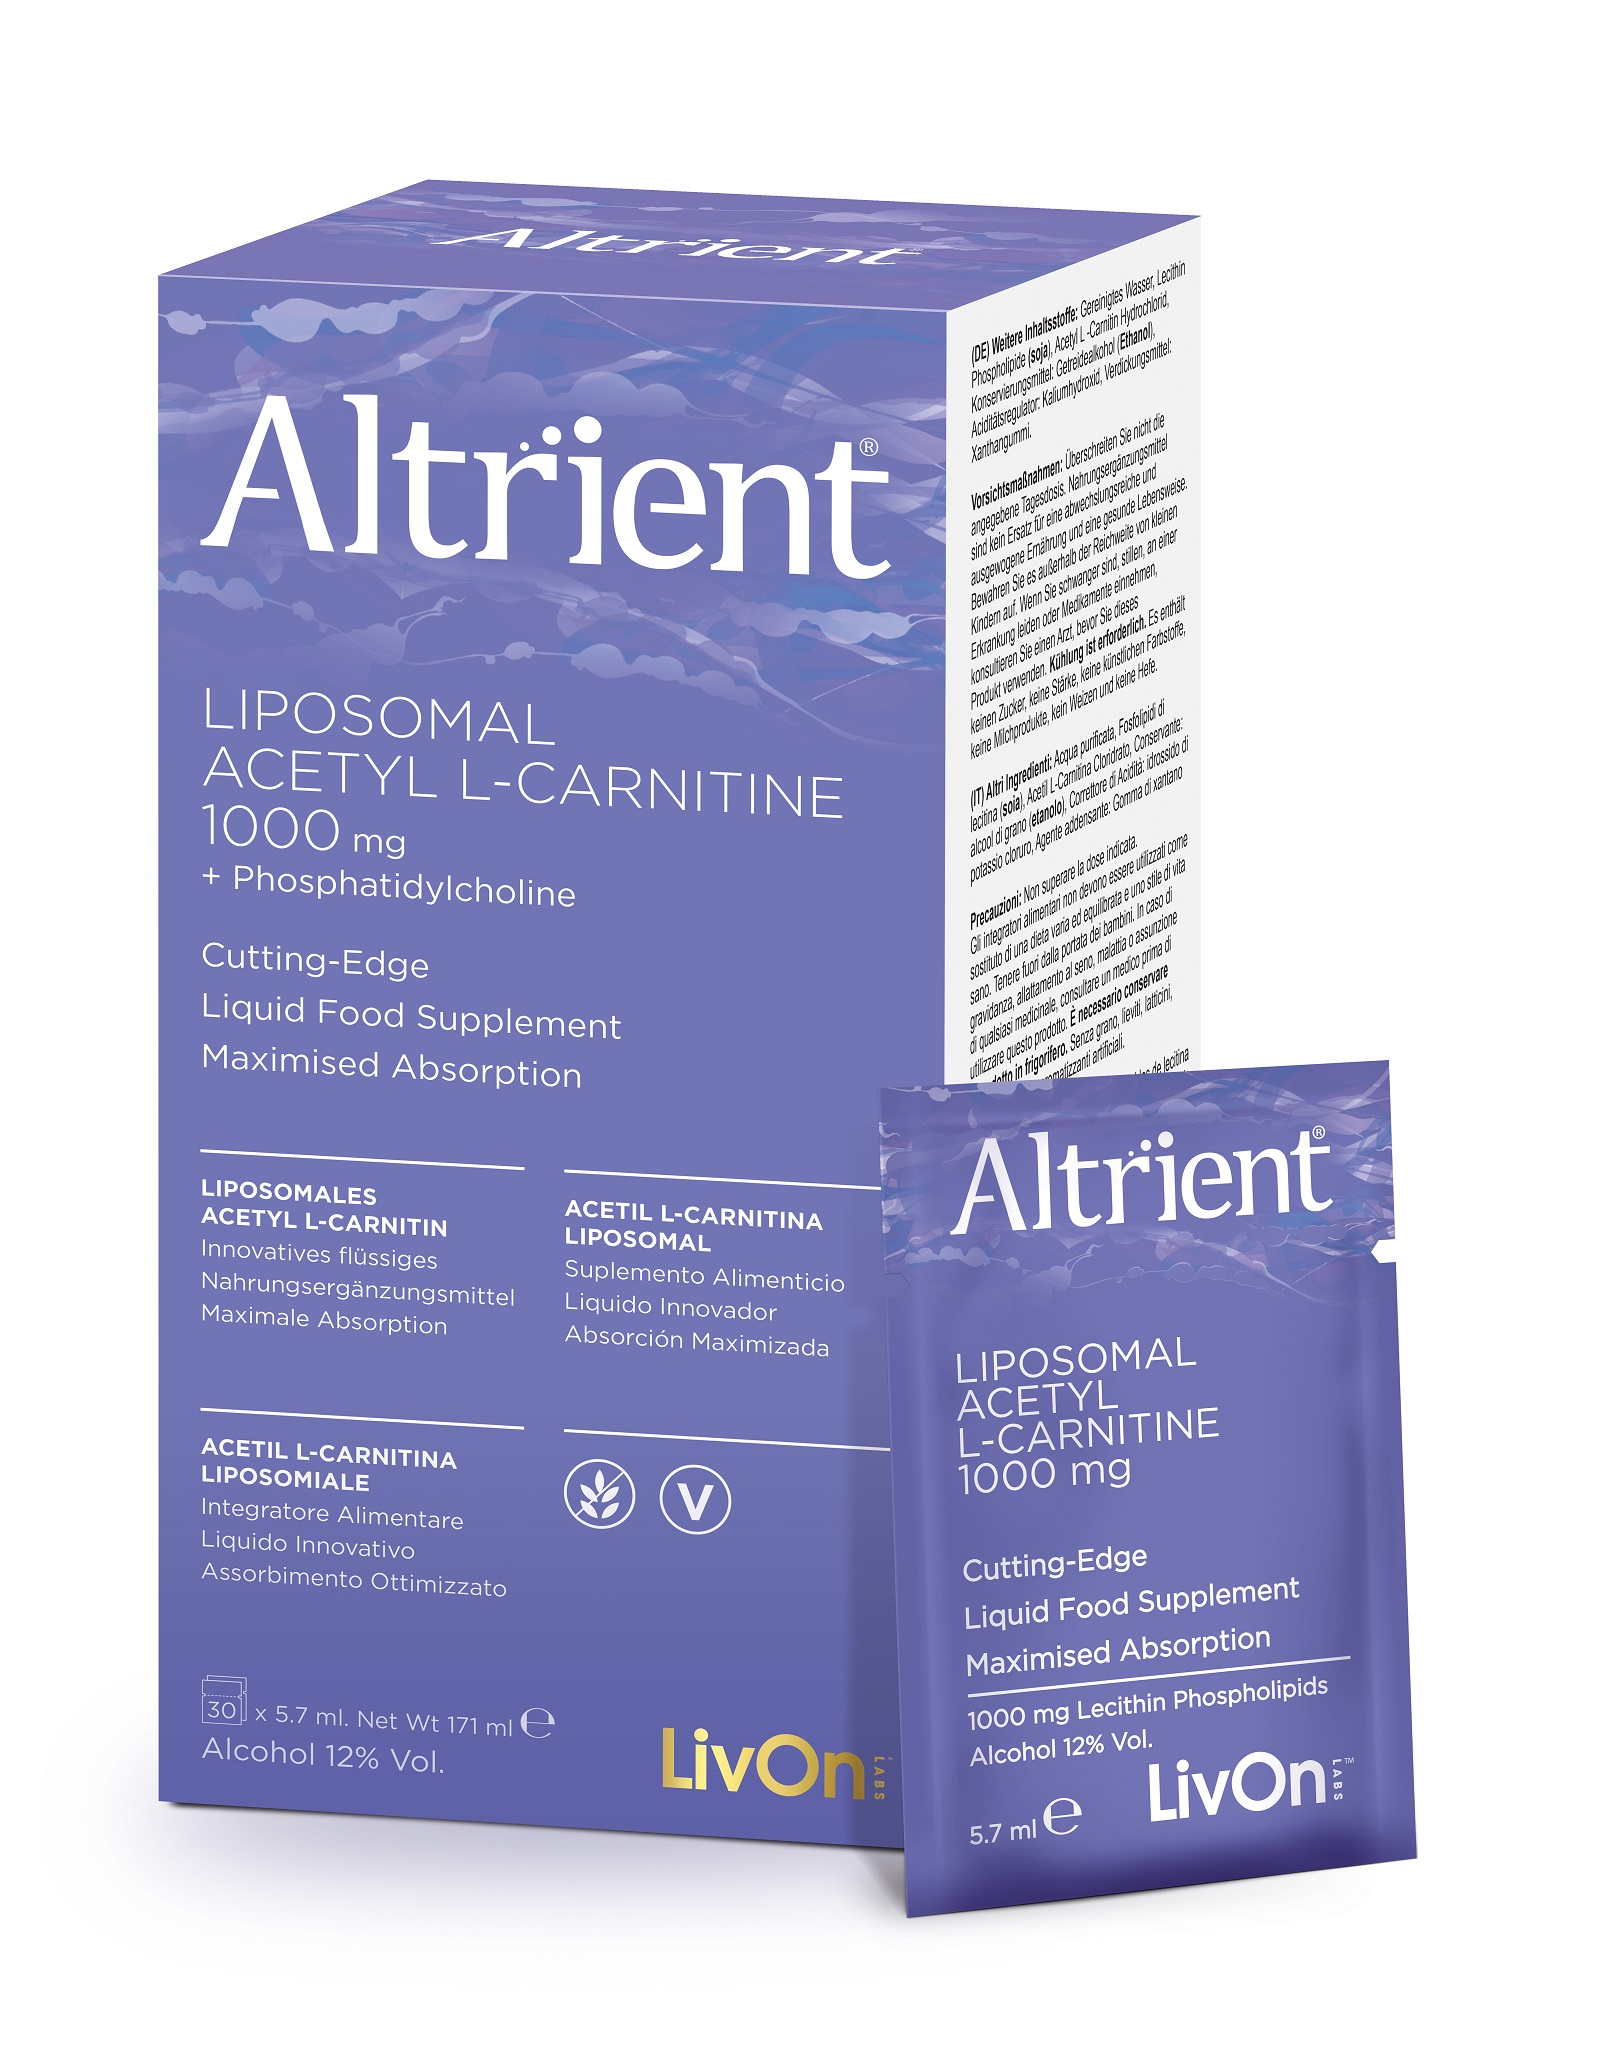 Liposomal Acetyl L-Carnitine 1000mg 30 Sachets (Currently Unavailable)